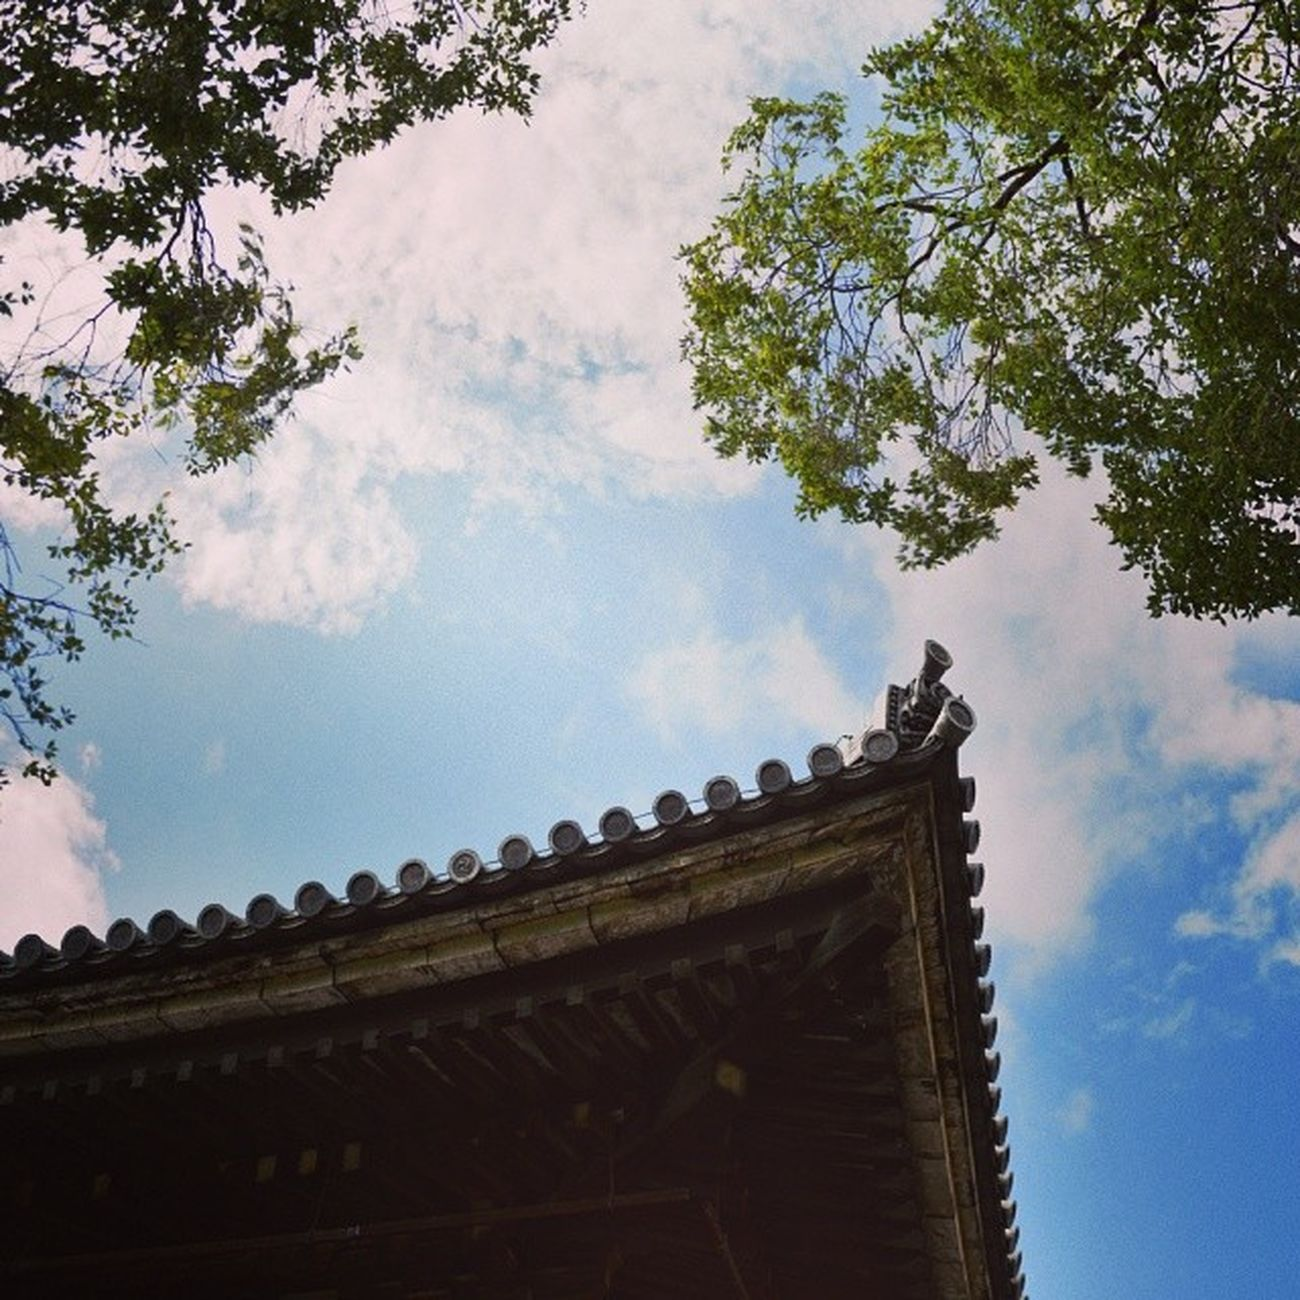 三十三间堂 蓝天 绿树 晴 instagood instagram followme 屋檐 roof sky cloud leaf